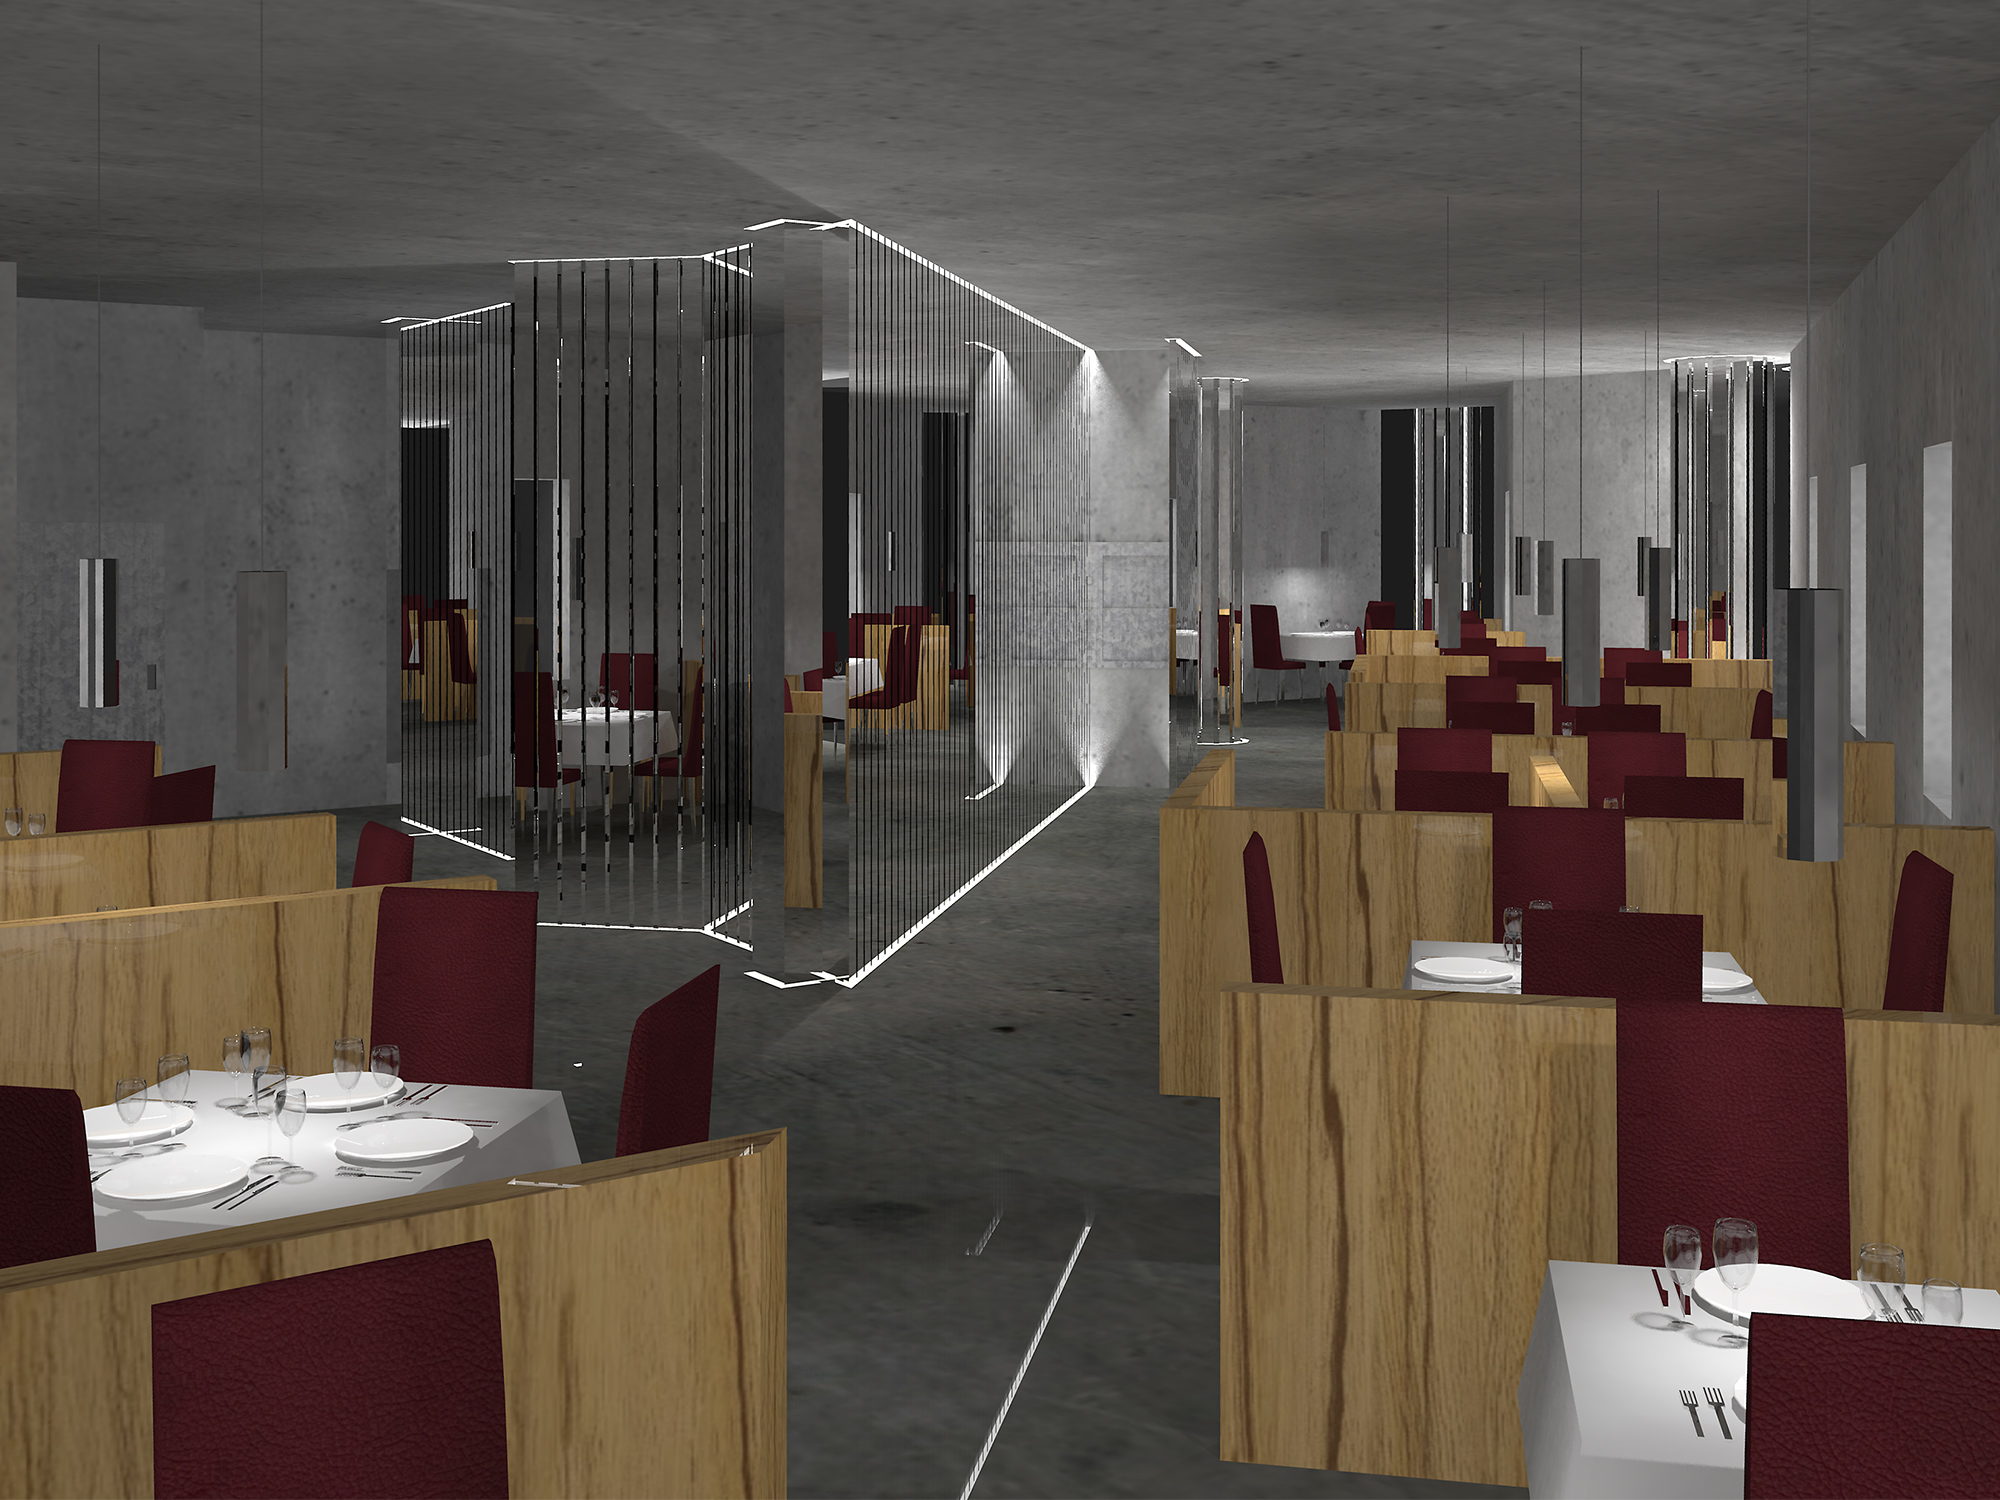 CGI modern art deco restaurant with concrete walls, chrome bar staircase and pendants, oak partitions and oxblood leather seats